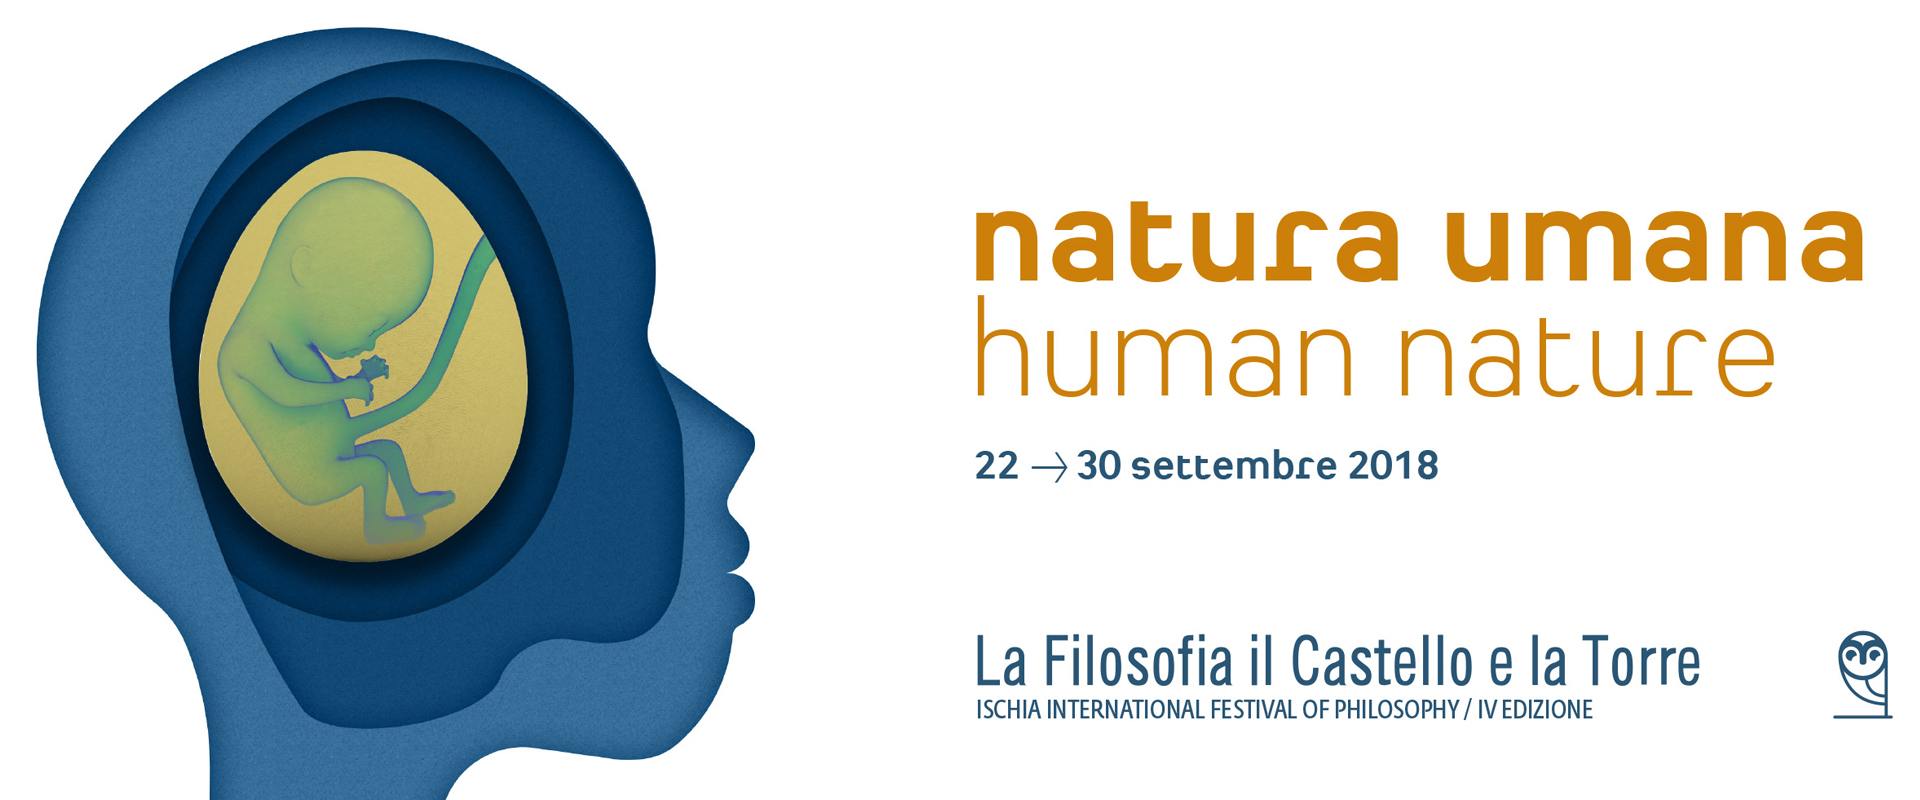 Ischia International Festival of Philosophy 2018